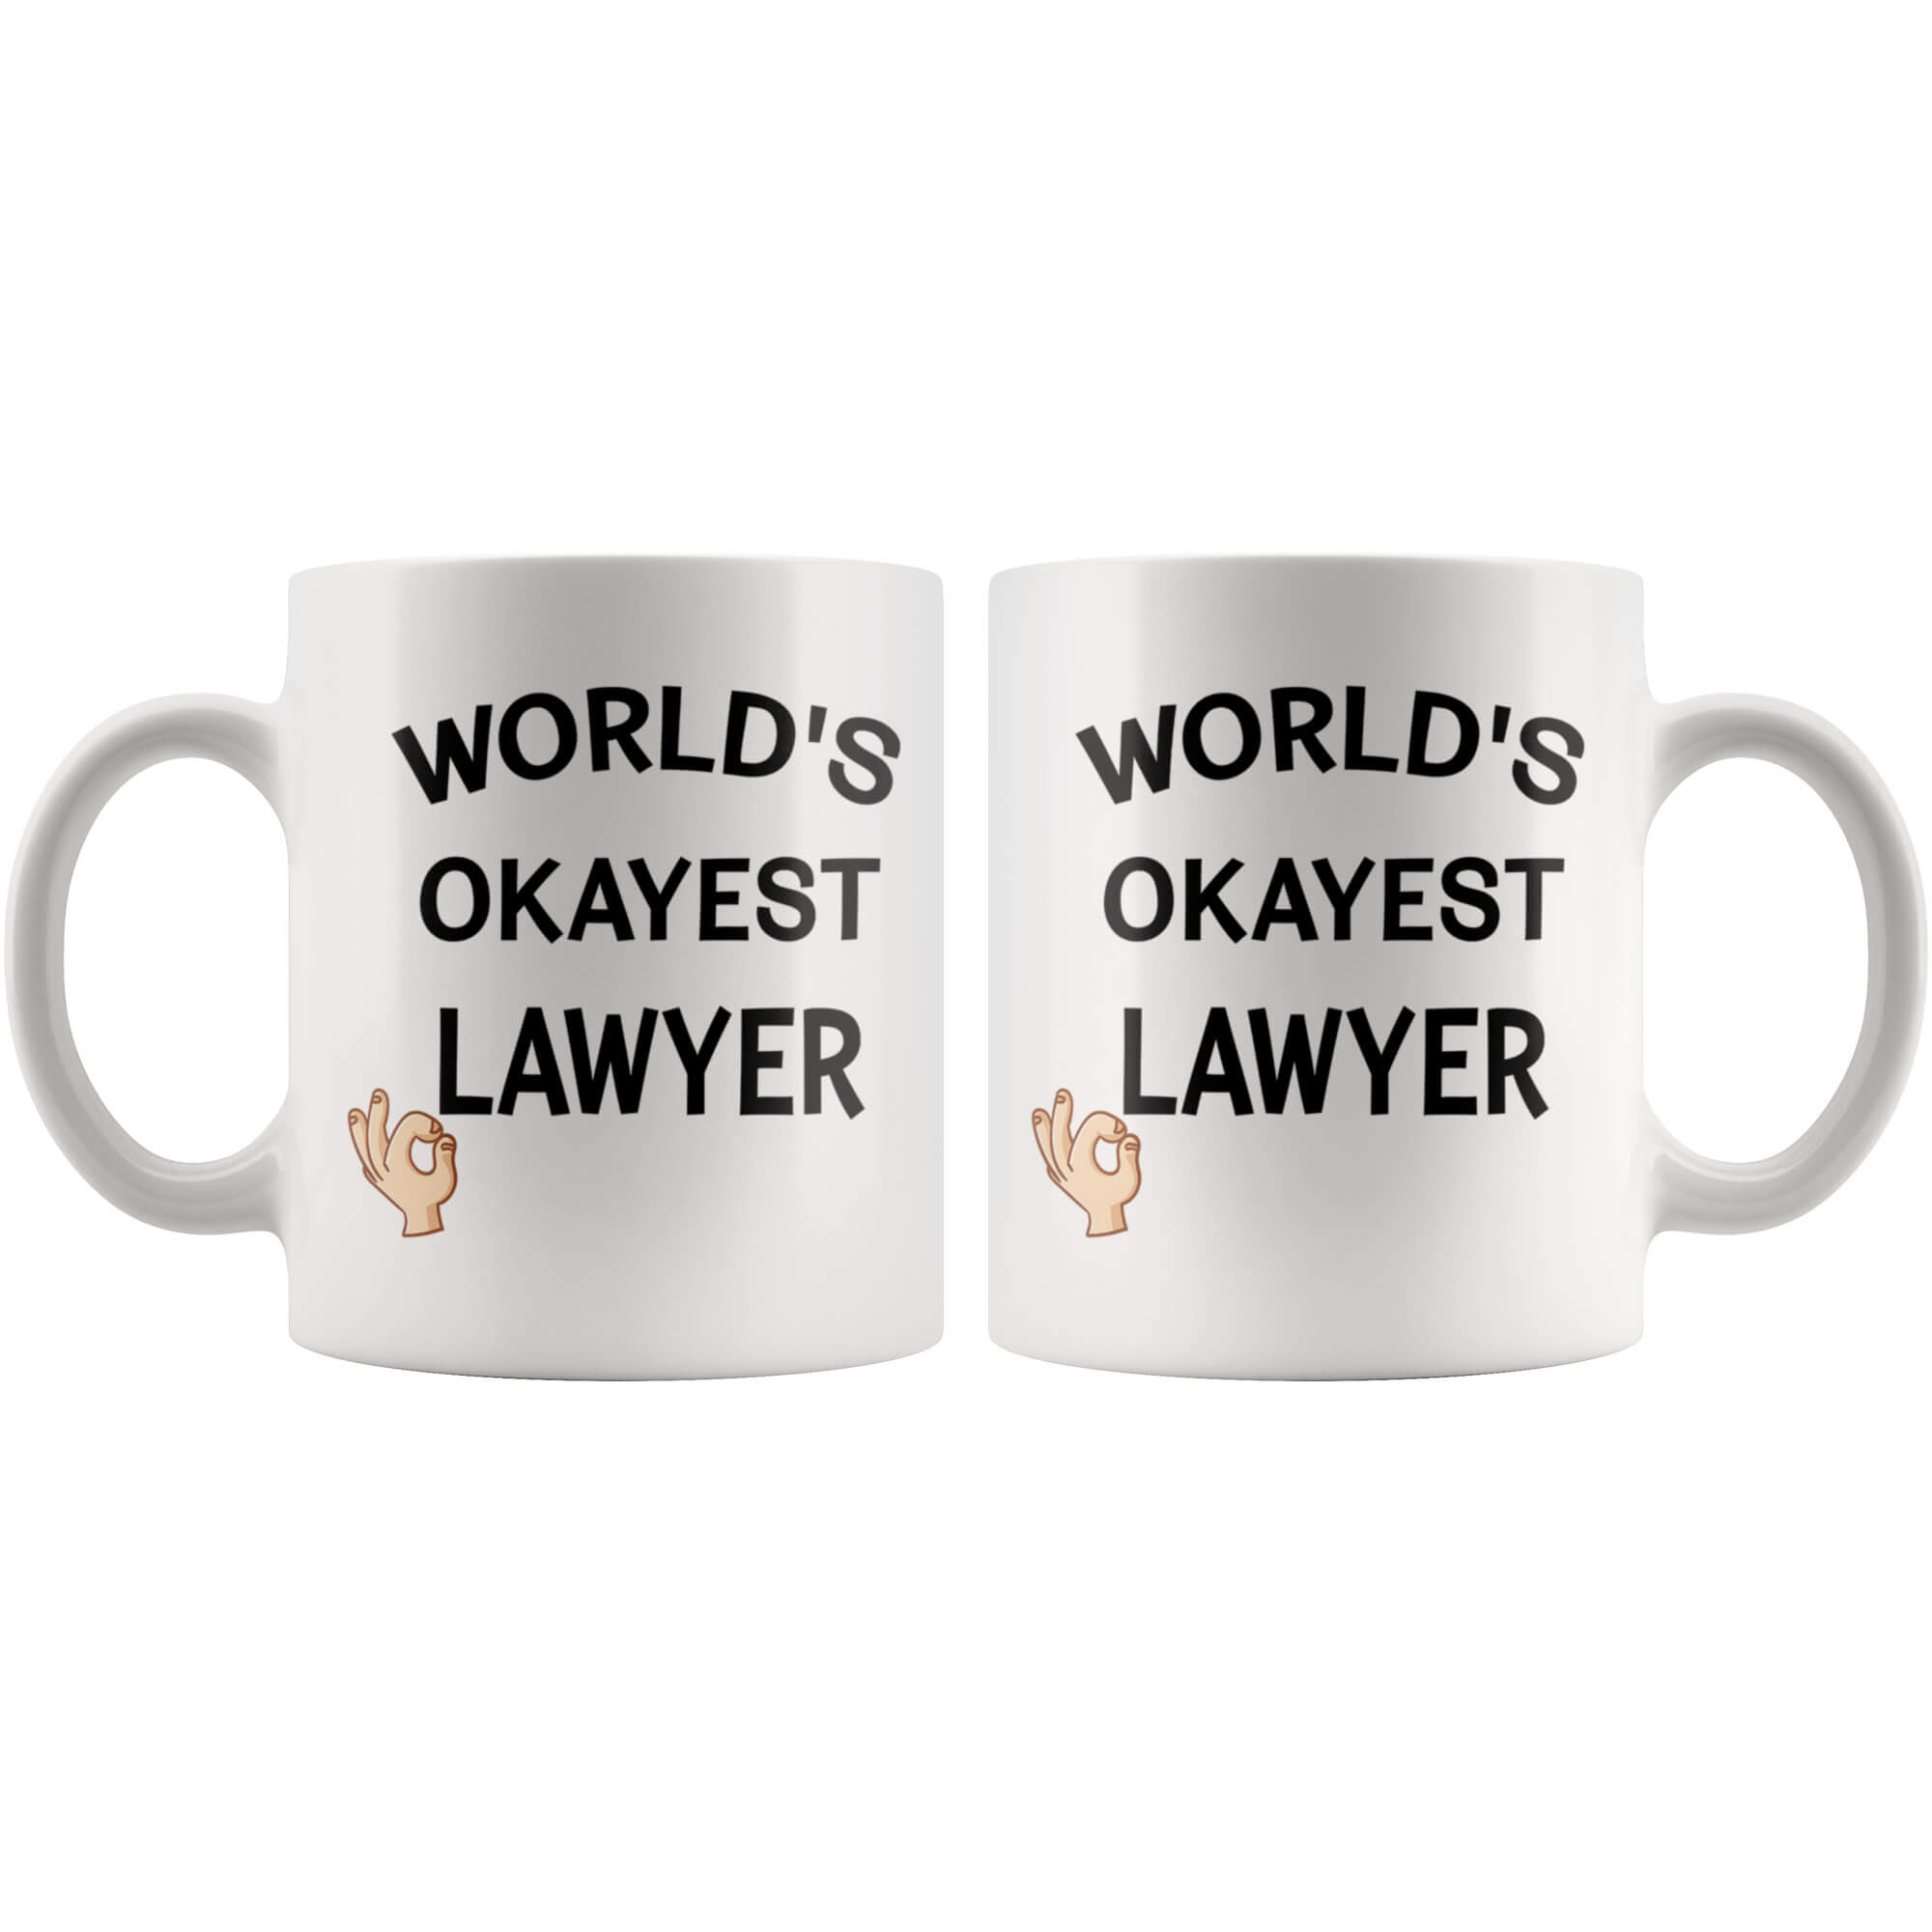 worlds okayest lawyer ceramic mug